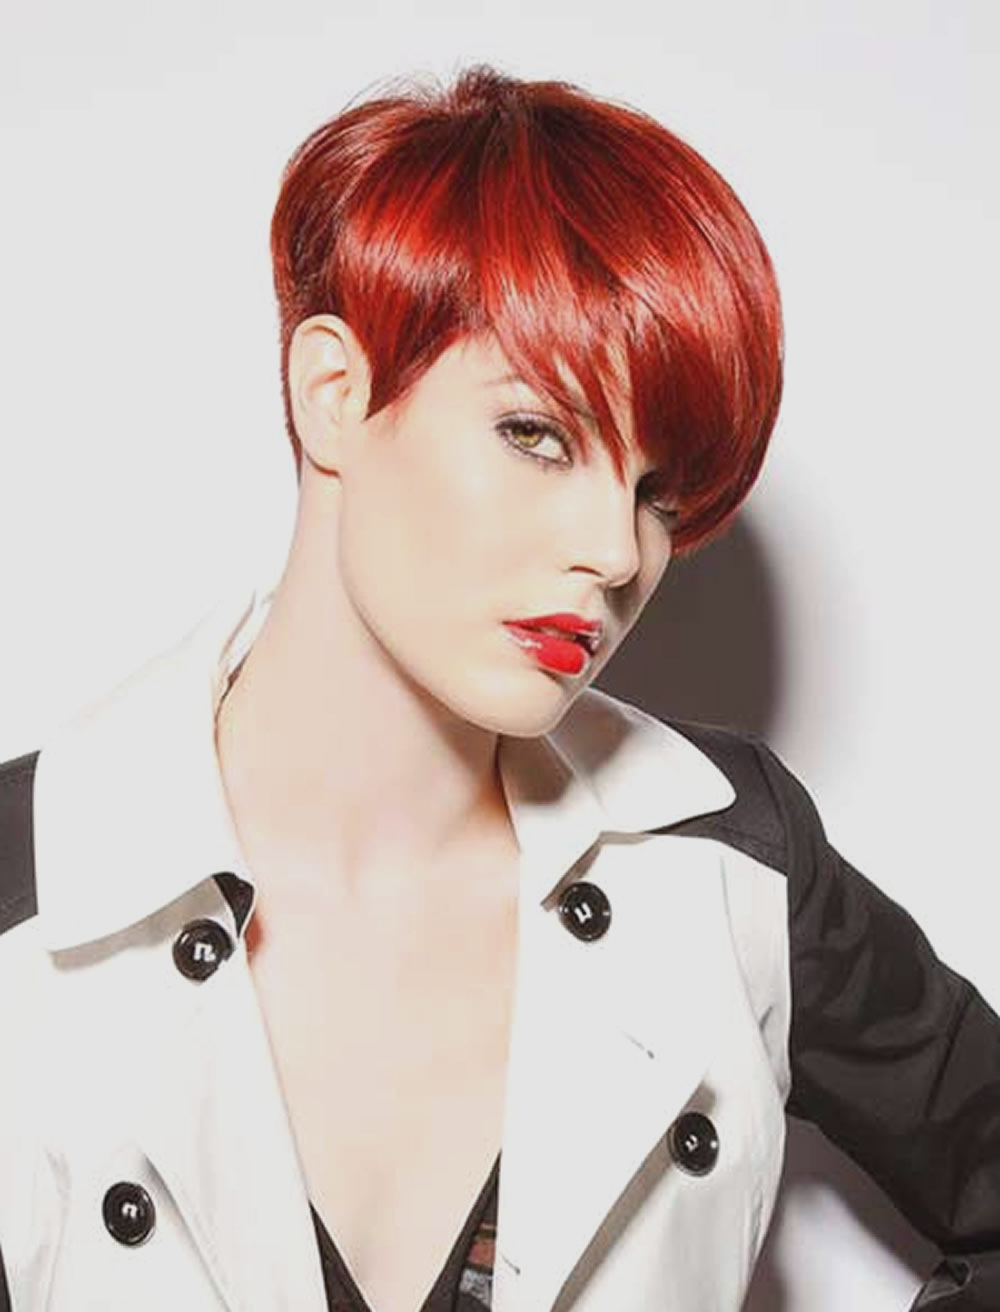 Short Haircuts With Red Hair | Cubeleaks With Regard To Short Haircuts With Red Hair (View 20 of 25)